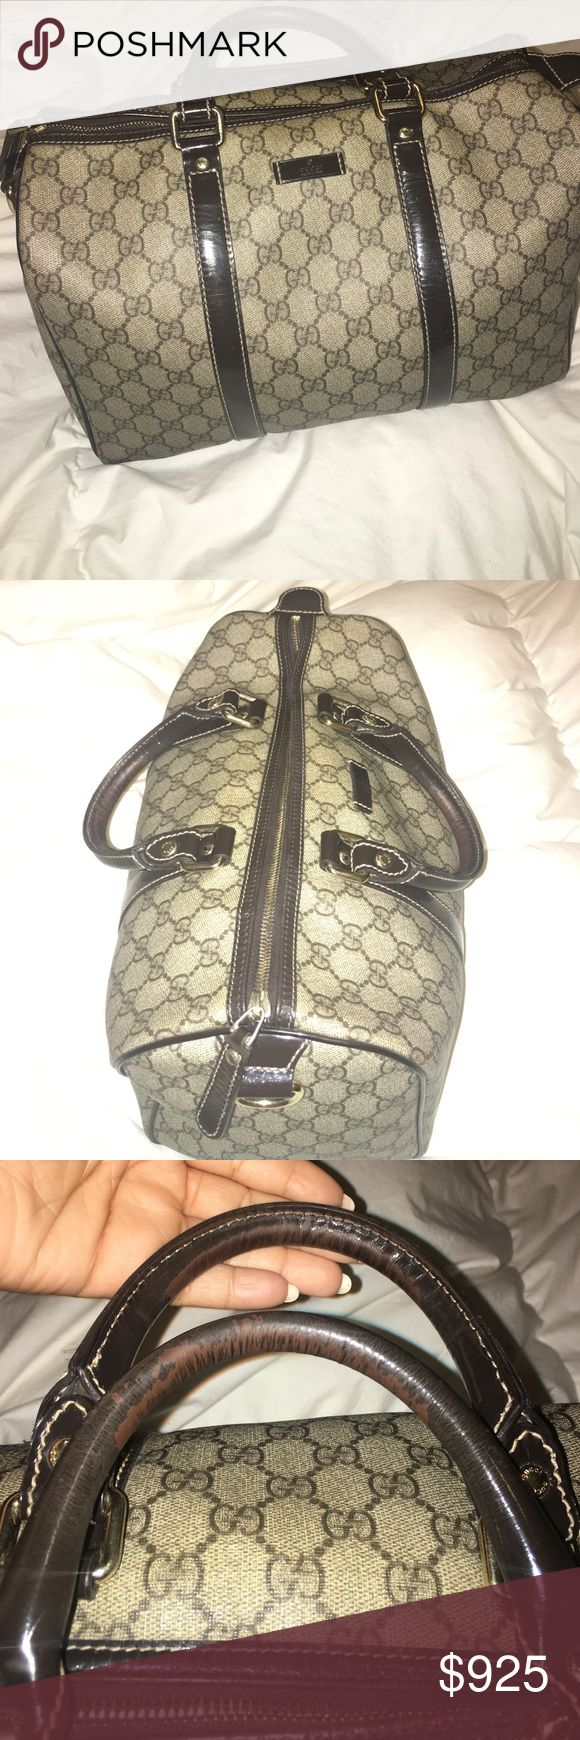 Gucci Boston AUTHENTIC 100% Light wear on the handles no stains on the outside or inside. No scuffs kept in perfect condition. Not worn everyday except on occasions ideal everyday handbag asking for $900-$850 does not come in original box or dust bag. Price can be negotiated Gucci Bags Satchels